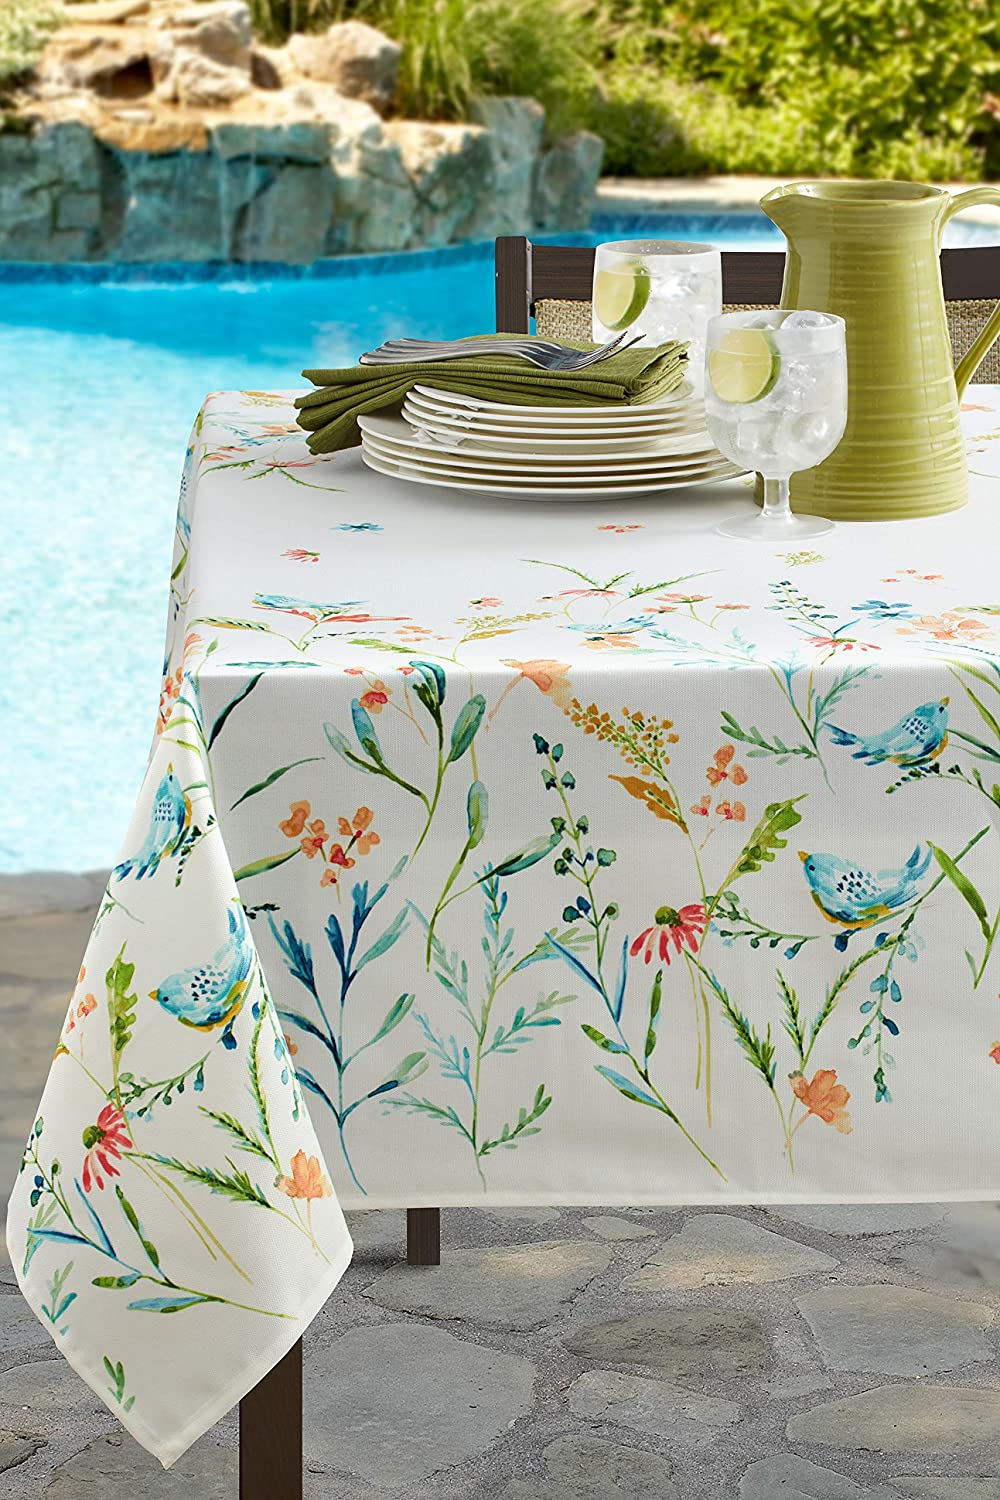 Benson Mills Indoor Outdoor Spillproof Tablecloth For Spring Summer Party Picnic Milly 60 X 84 Rectangular Furniture Decor Amazon Com